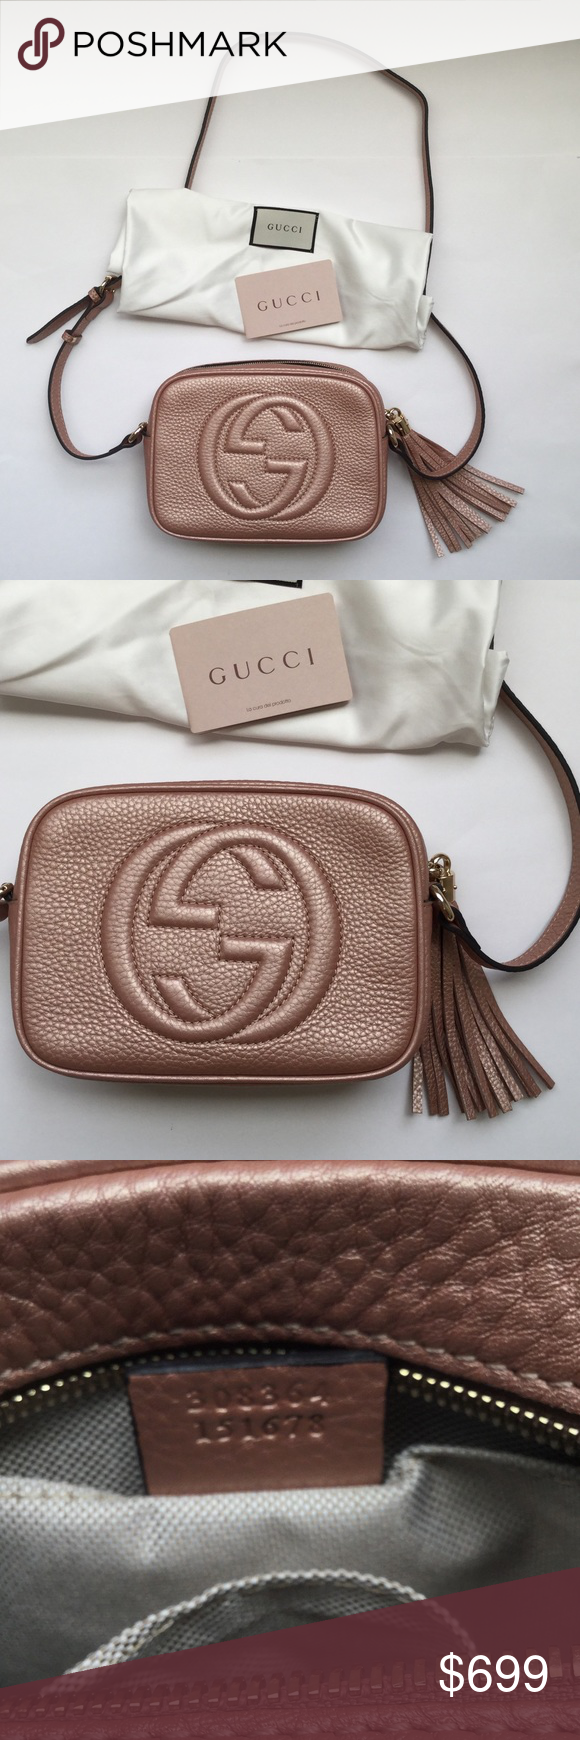 52238cd765a Authentic Gucci Soho Disco Bag Authentic Gucci Soho Disco Bag. Rare Pink  Metallic Color.